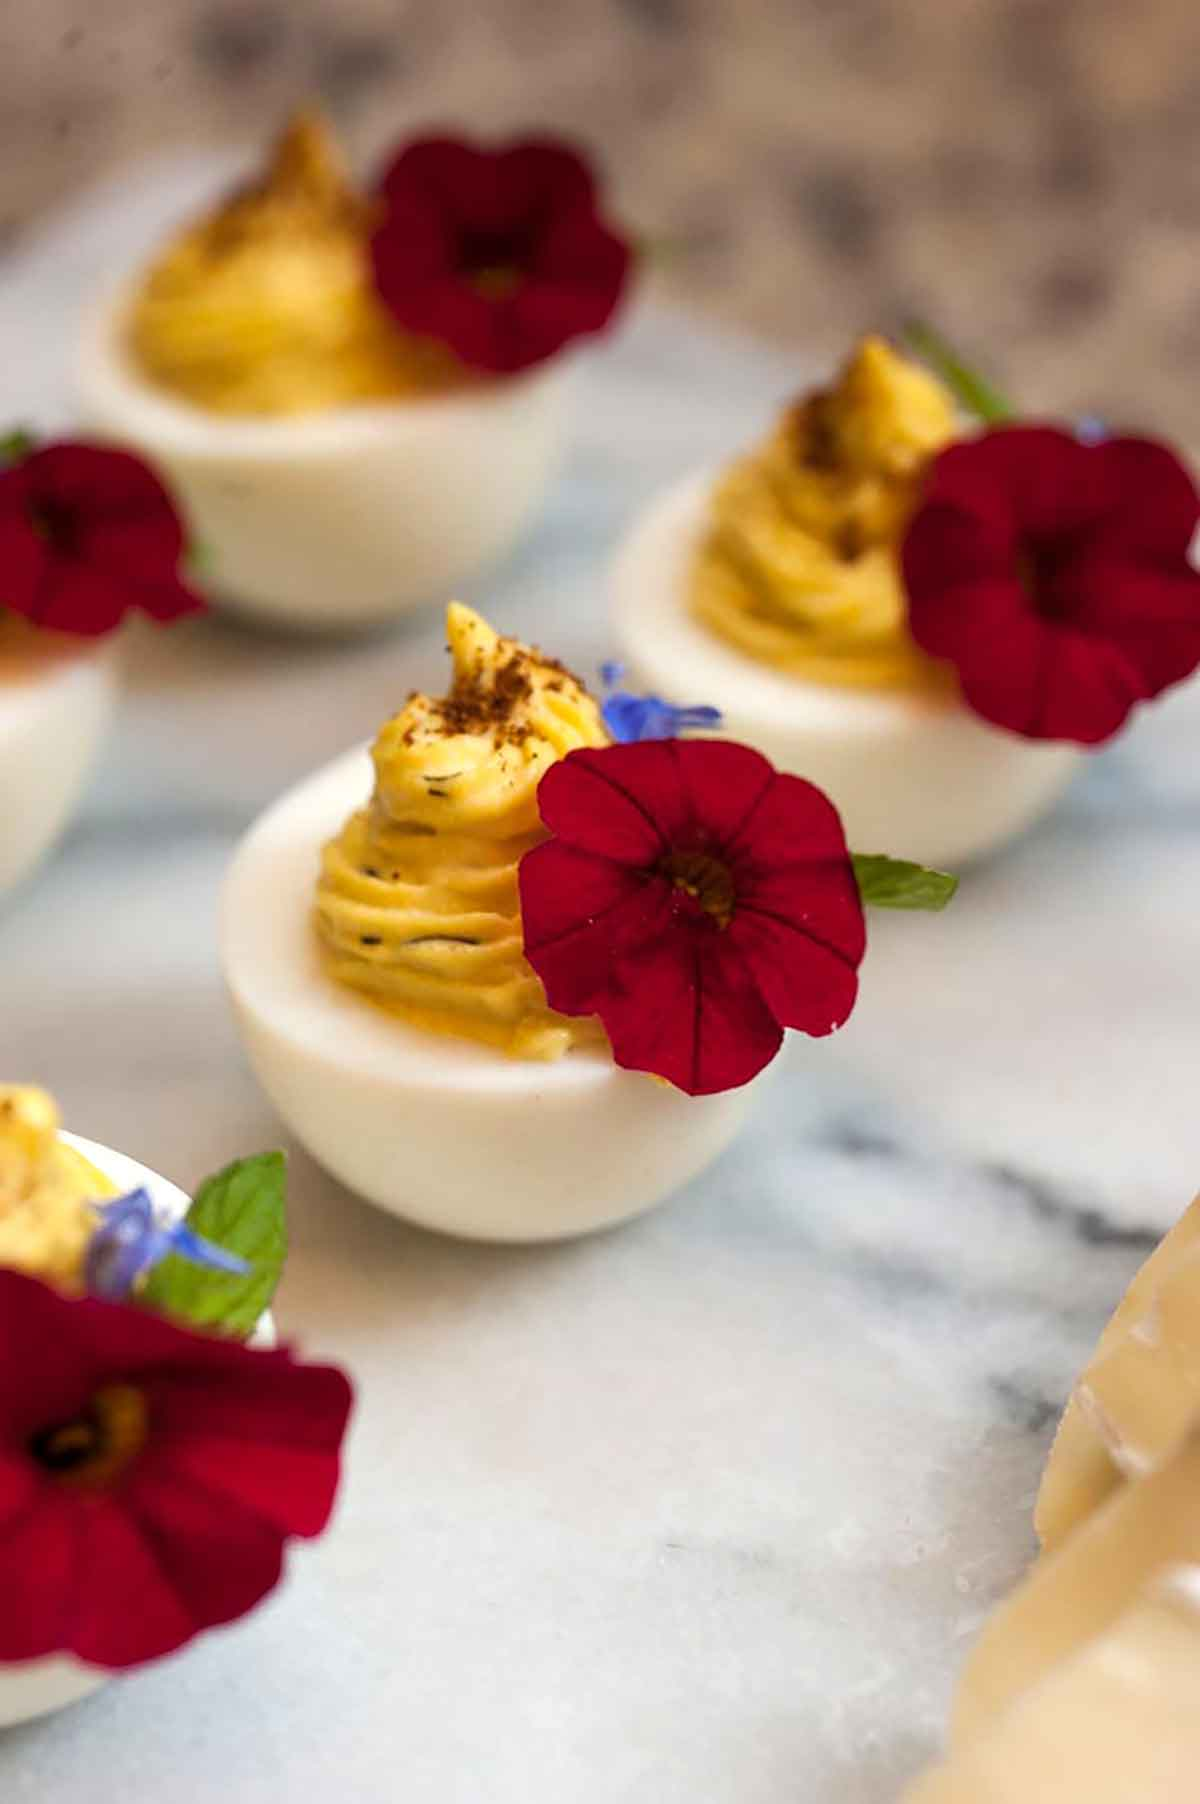 5 deviled eggs, garnished with red flowers on a marble board.